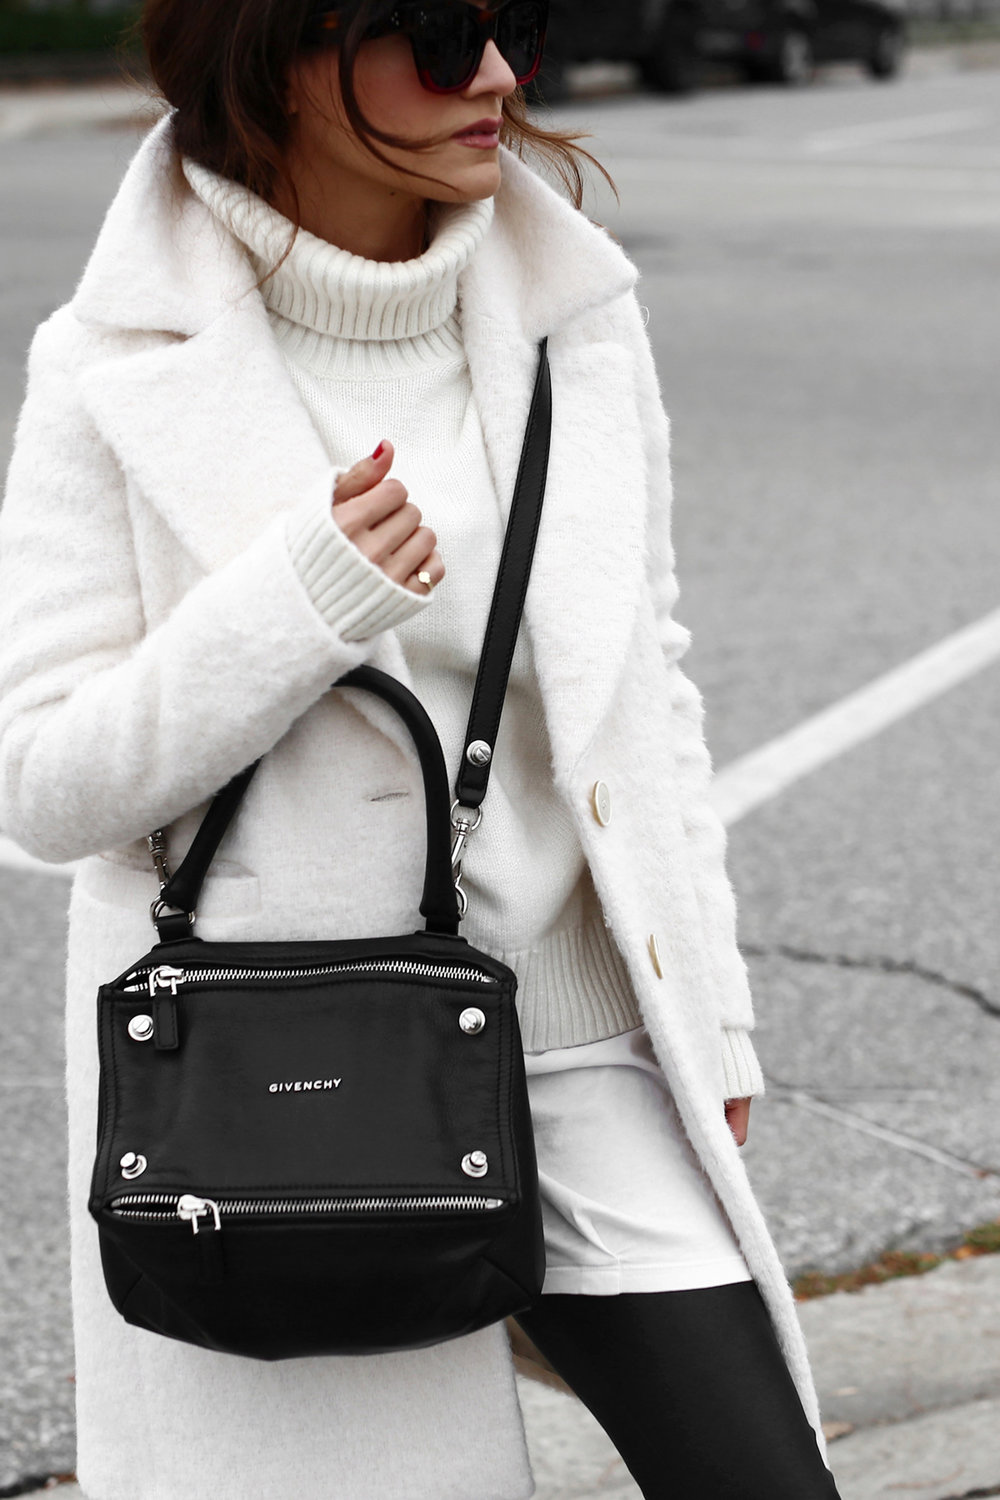 Winter White oversized knit, coat, leather leggings, Givenchy leopard print studded boots and Givenchy Pandora bag street style_2709.jpg